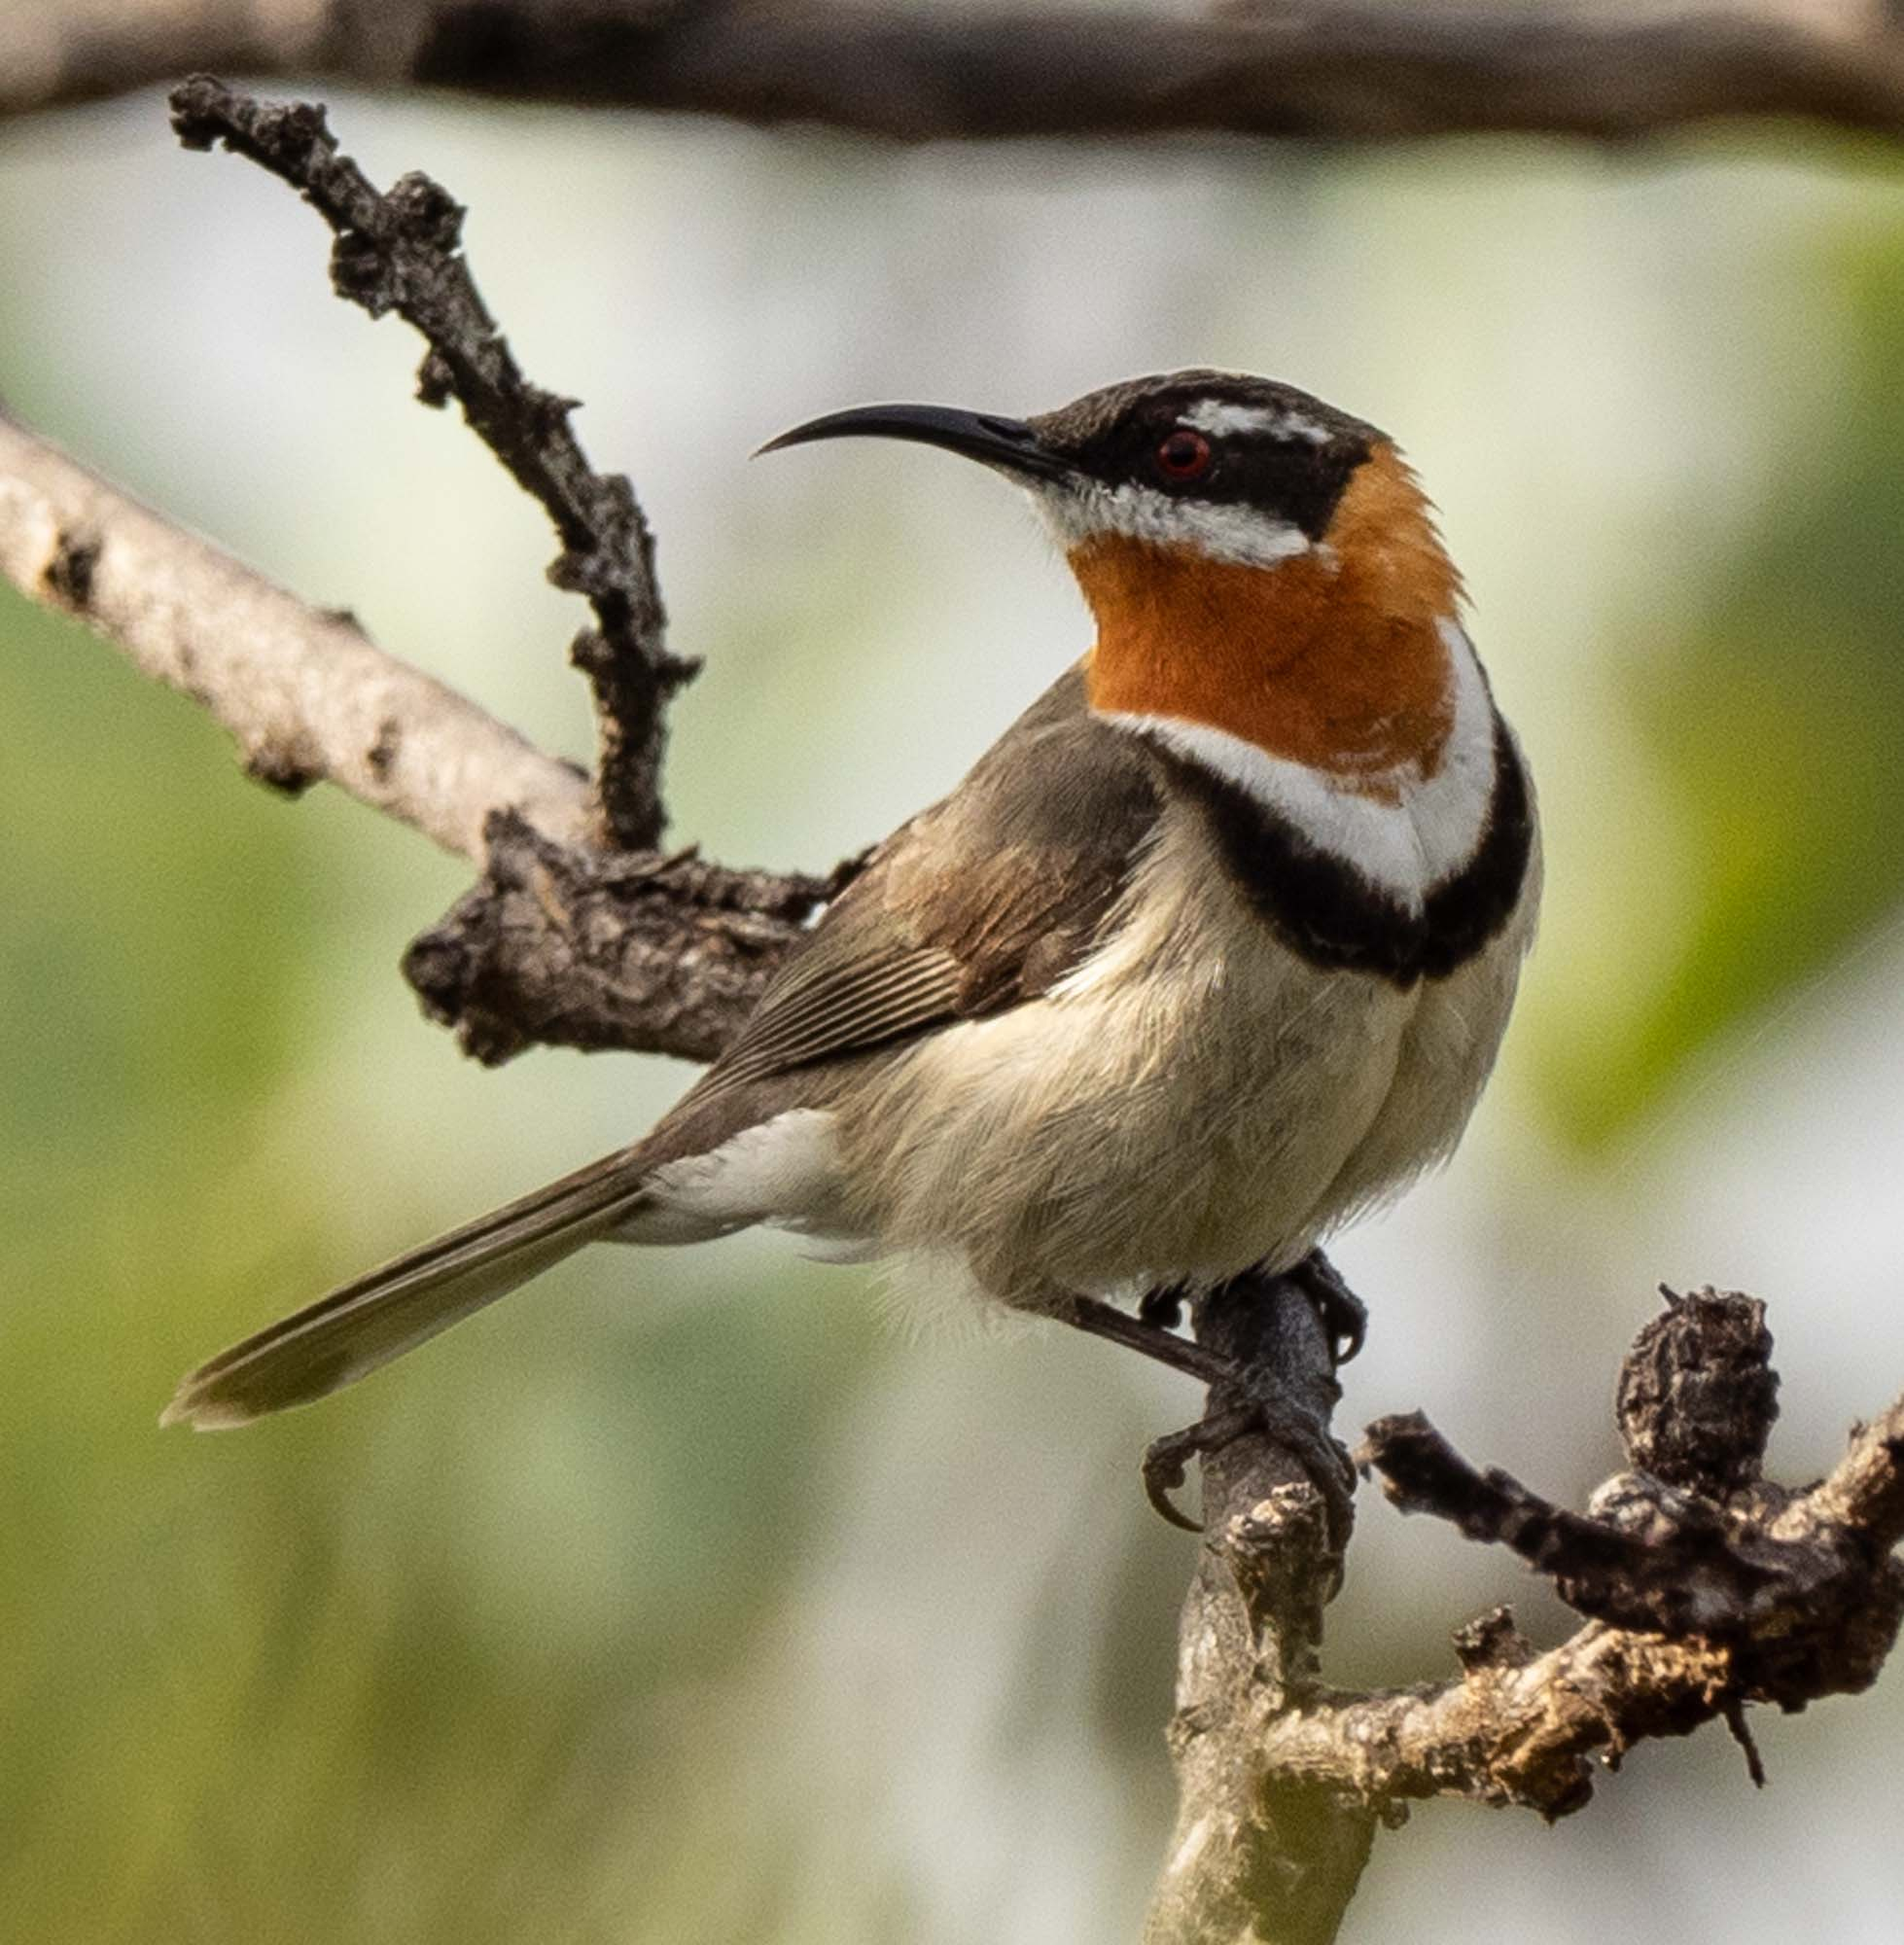 Western Spinebill - male